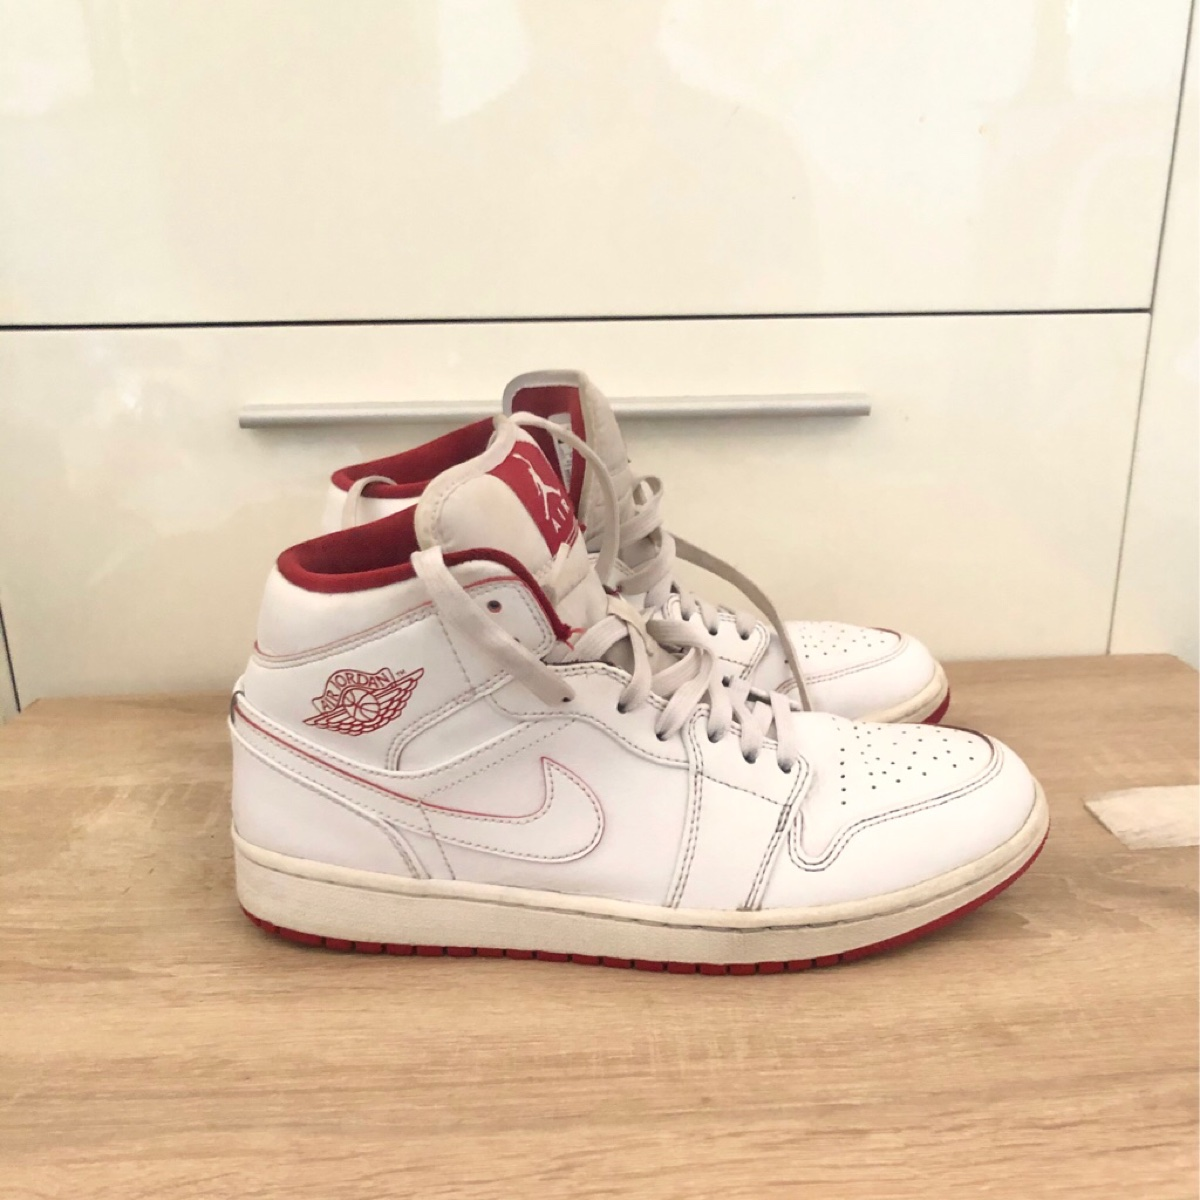 Nike air jordan 1 MiD White GYM High Top